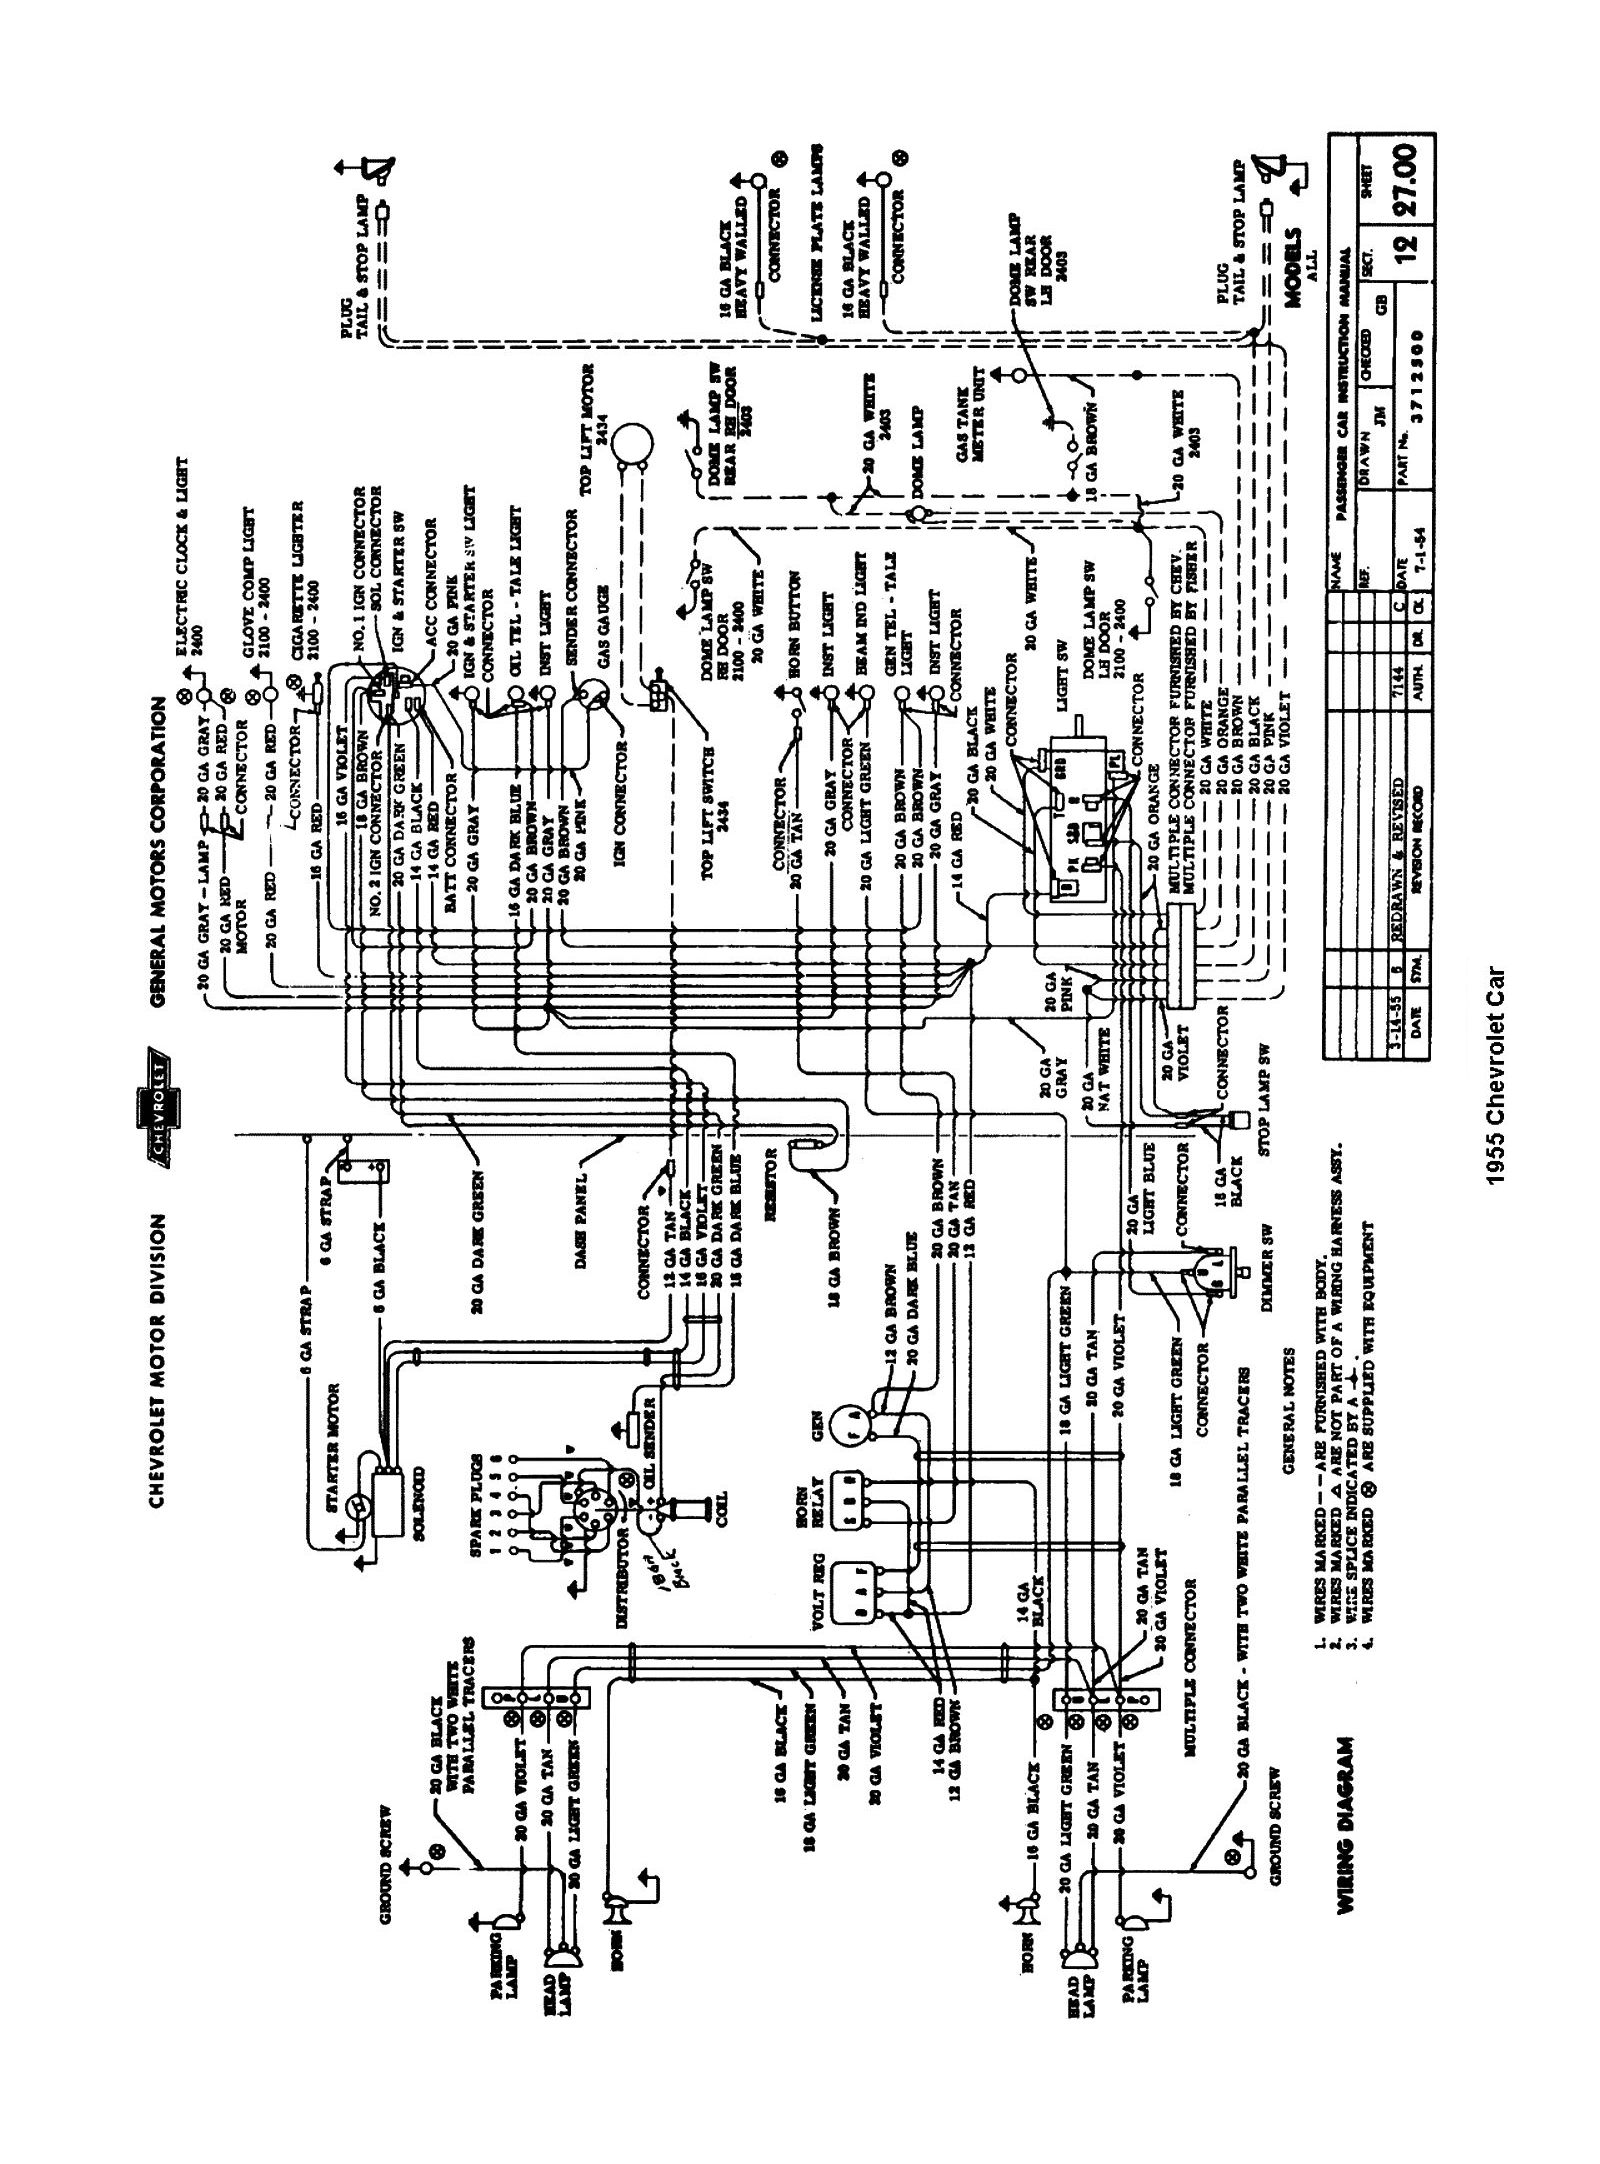 1958 gmc wiring diagram not lossing wiring diagram • chevy wiring diagrams rh chevy oldcarmanualproject com automotive wiring diagrams 1959 gmc wiring diagram